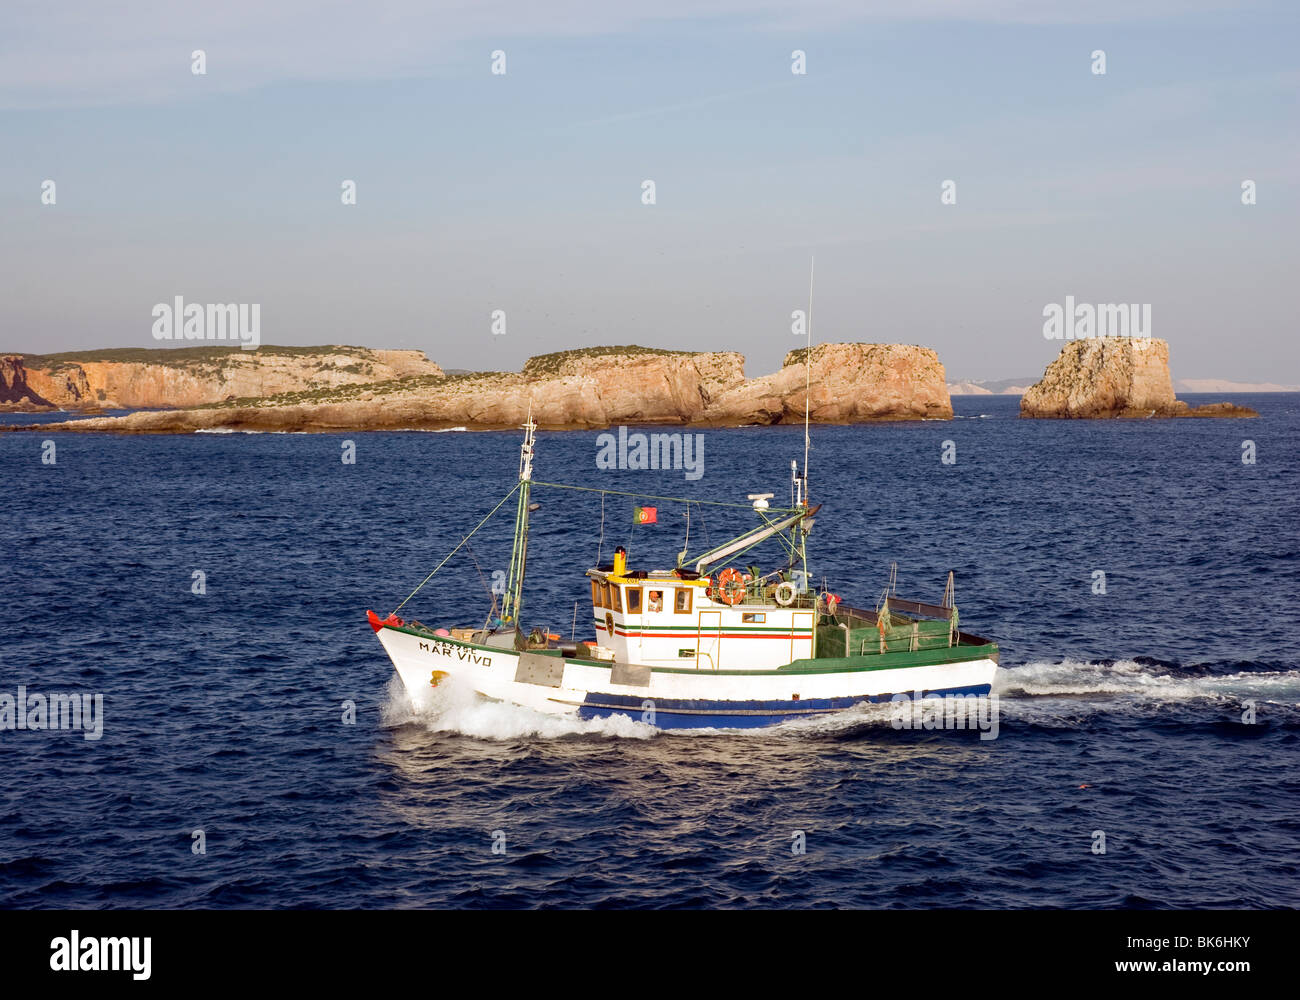 A fishing trawler in Martinhal Bay near Sagres, on southern Portugal's Algarve coast - Stock Image